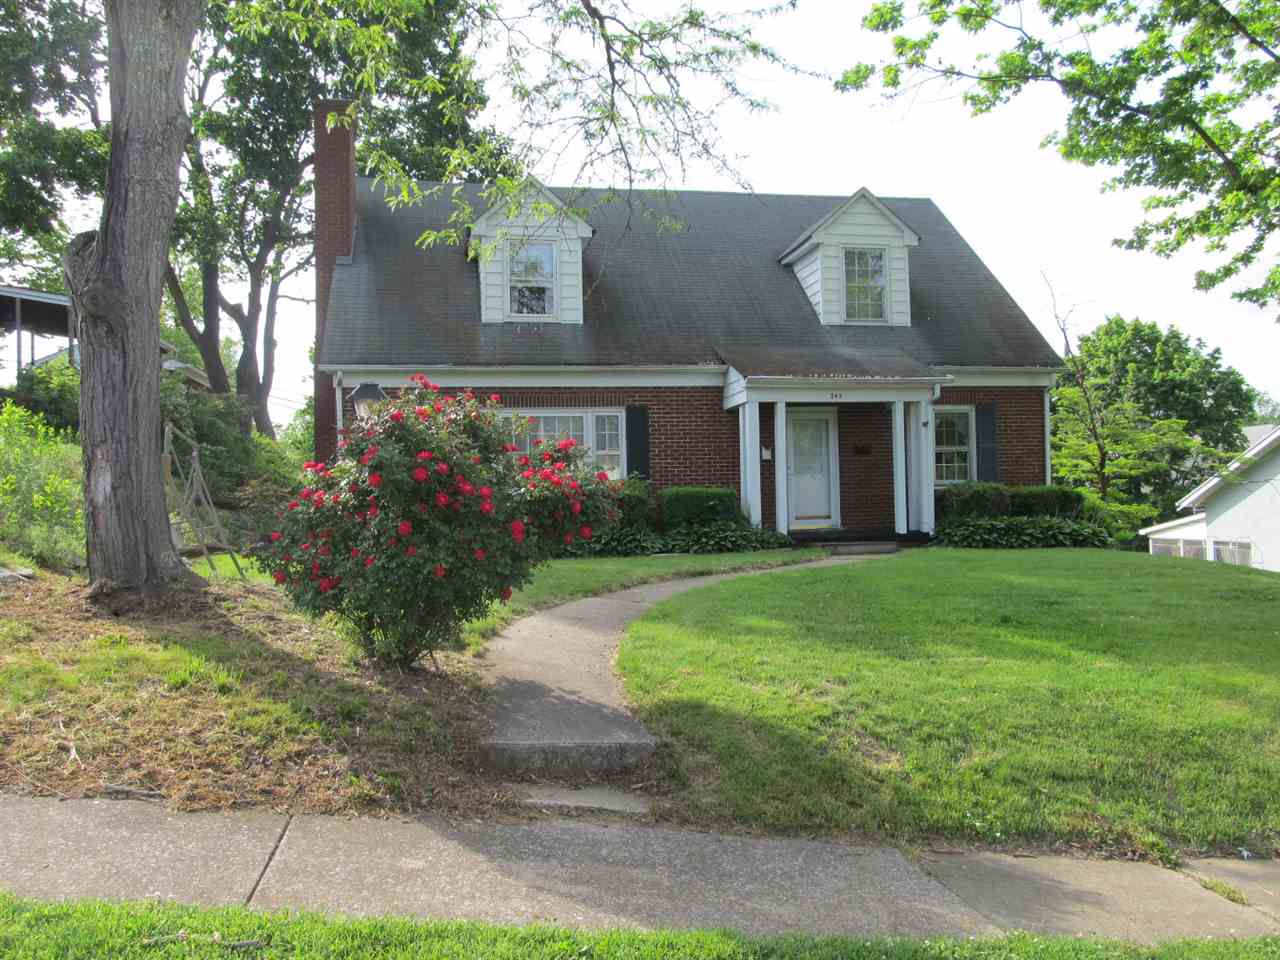 345 WALNUT AVE, WAYNESBORO, VA 22980